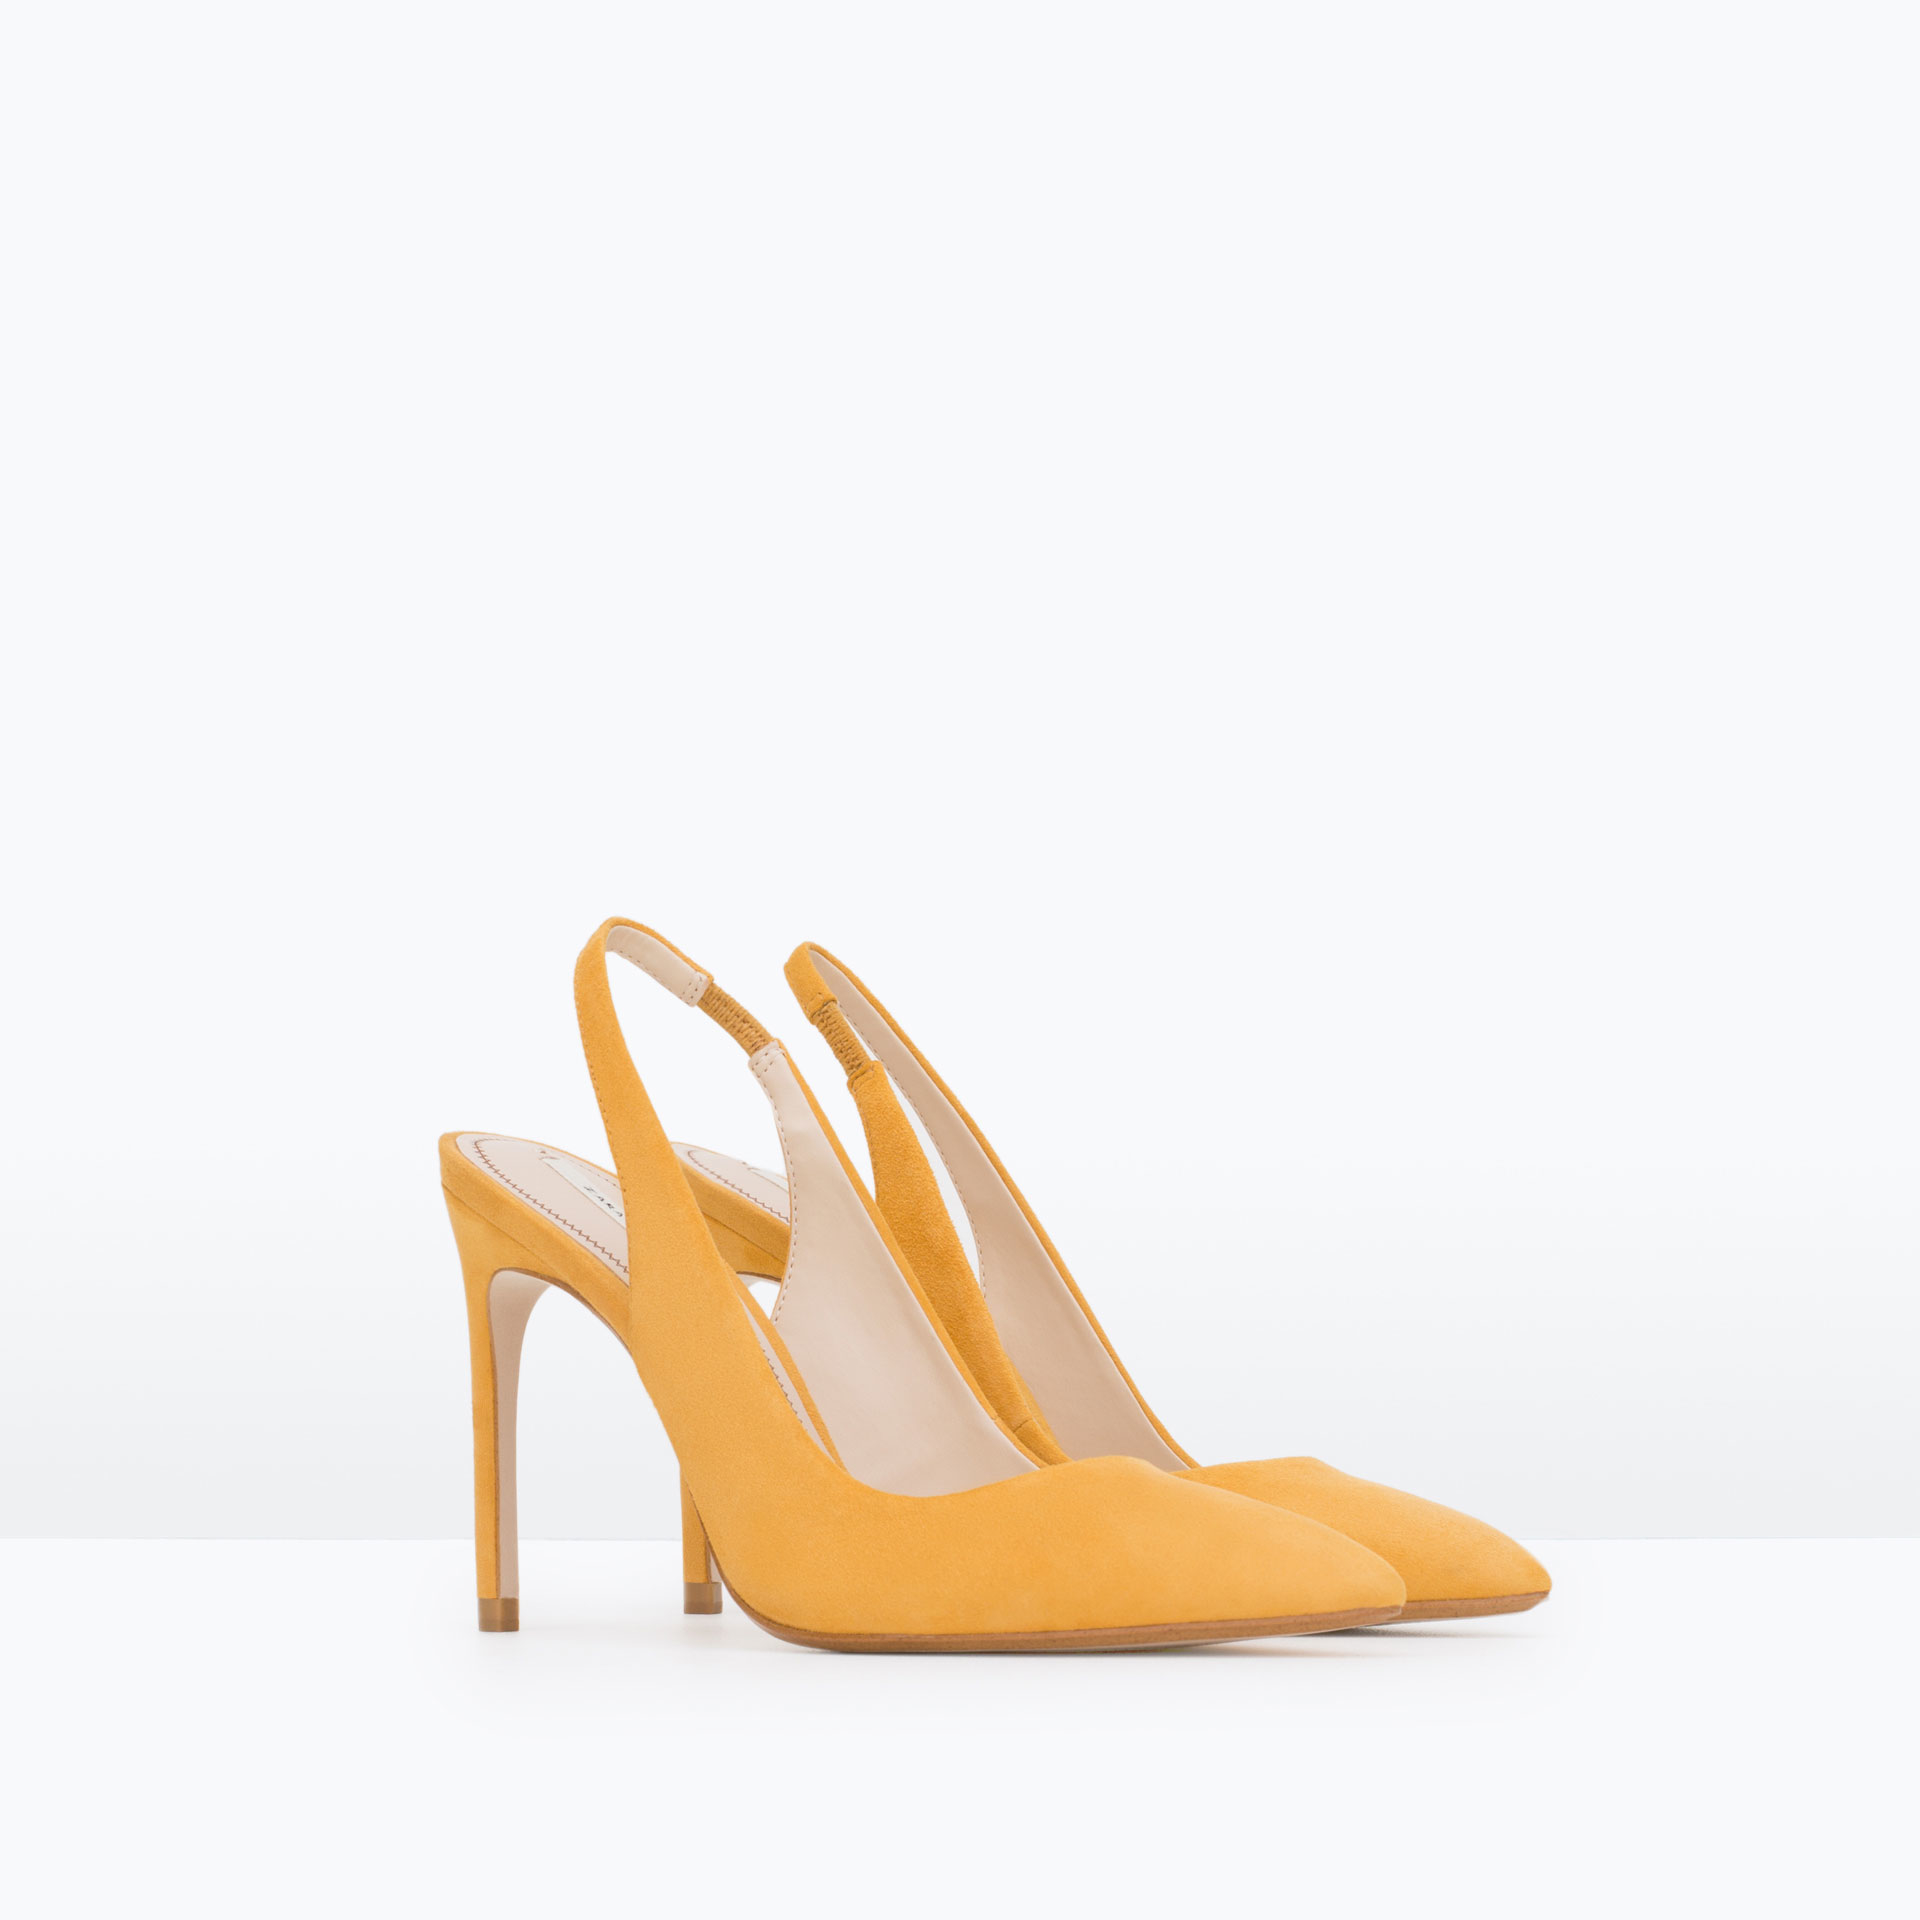 Zara Slingback High Heel Leather Shoes in Yellow | Lyst